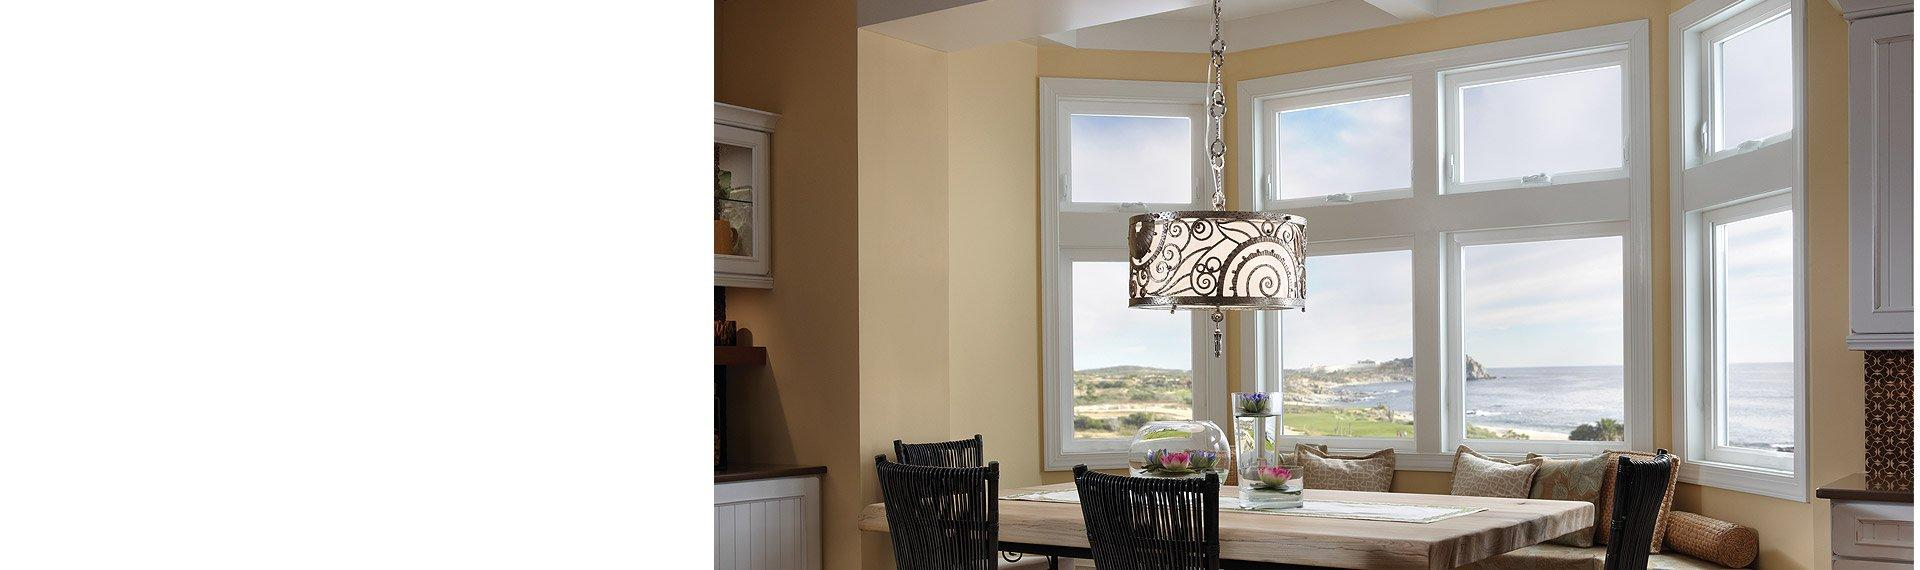 Montecito Series picture awning windows